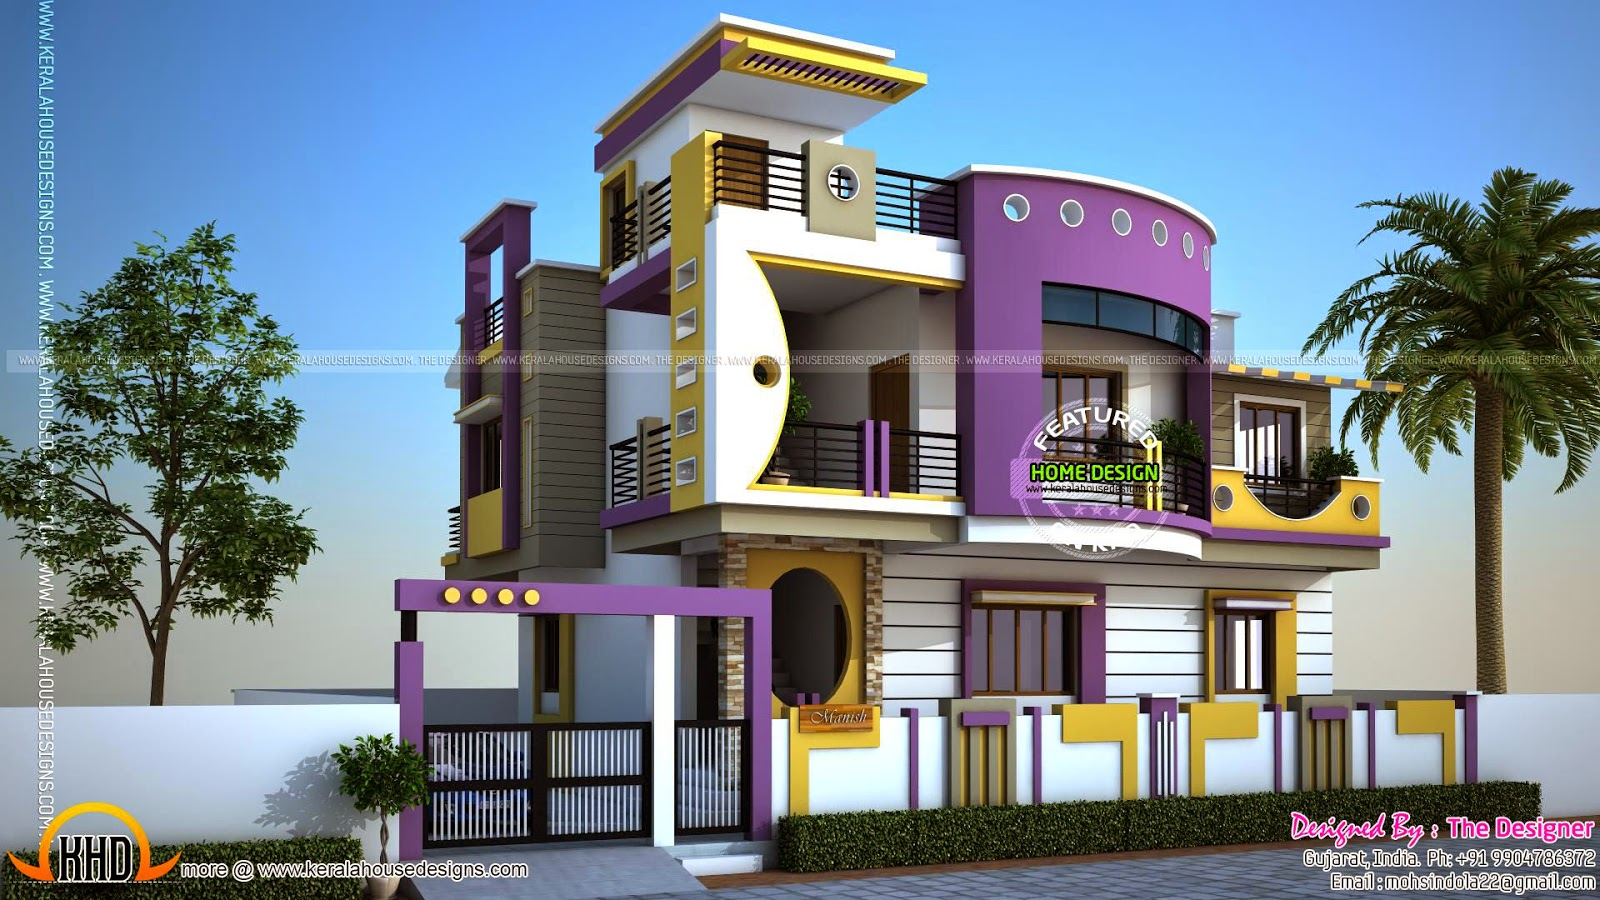 House exterior designs in contemporary style kerala home for Exterior house design ideas